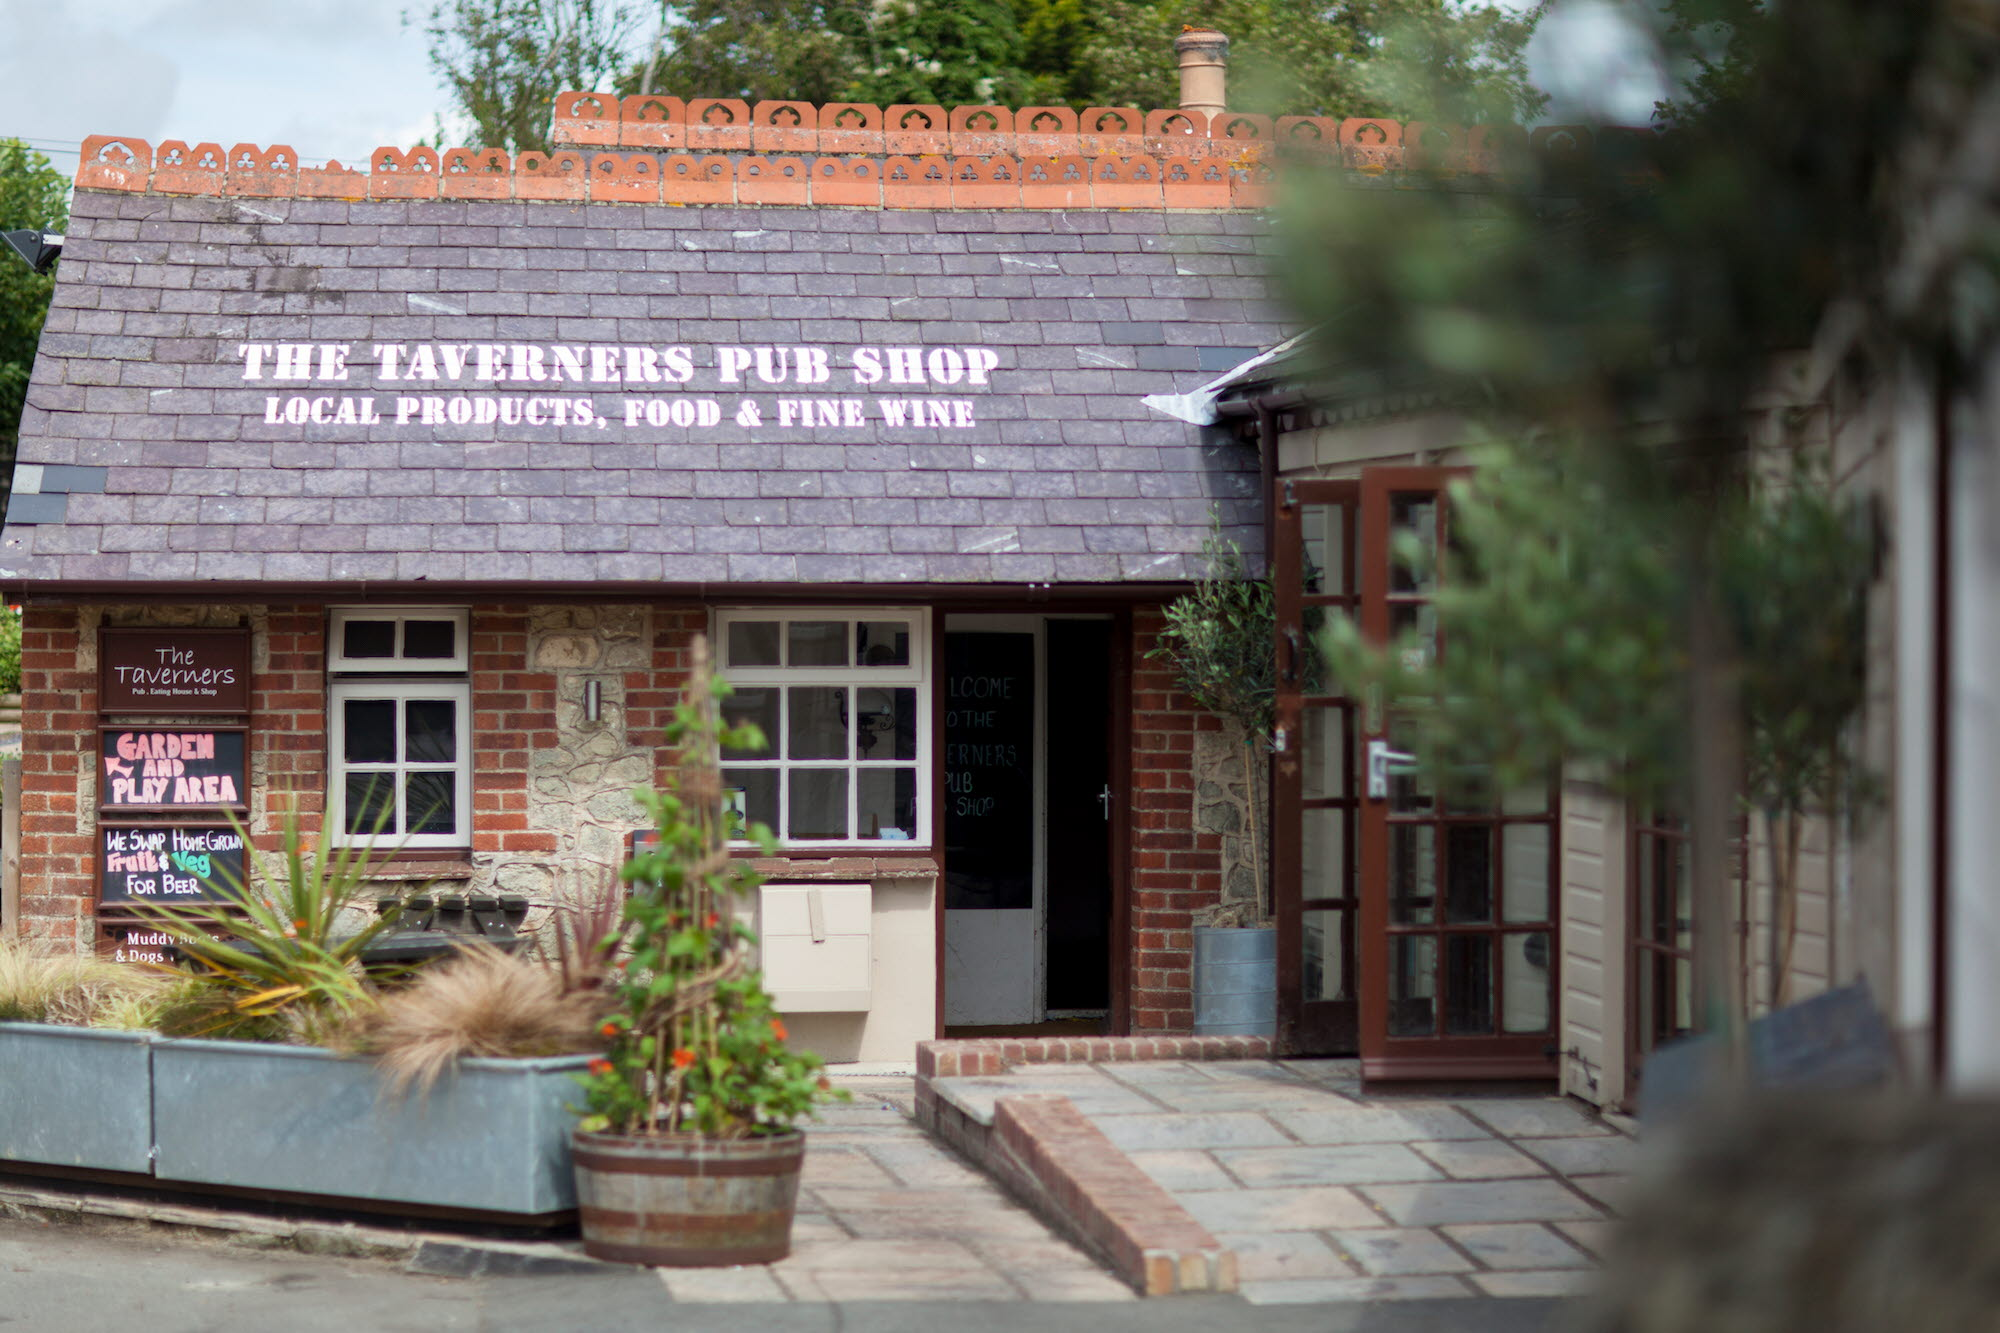 Godshill Taverners Pub Shop